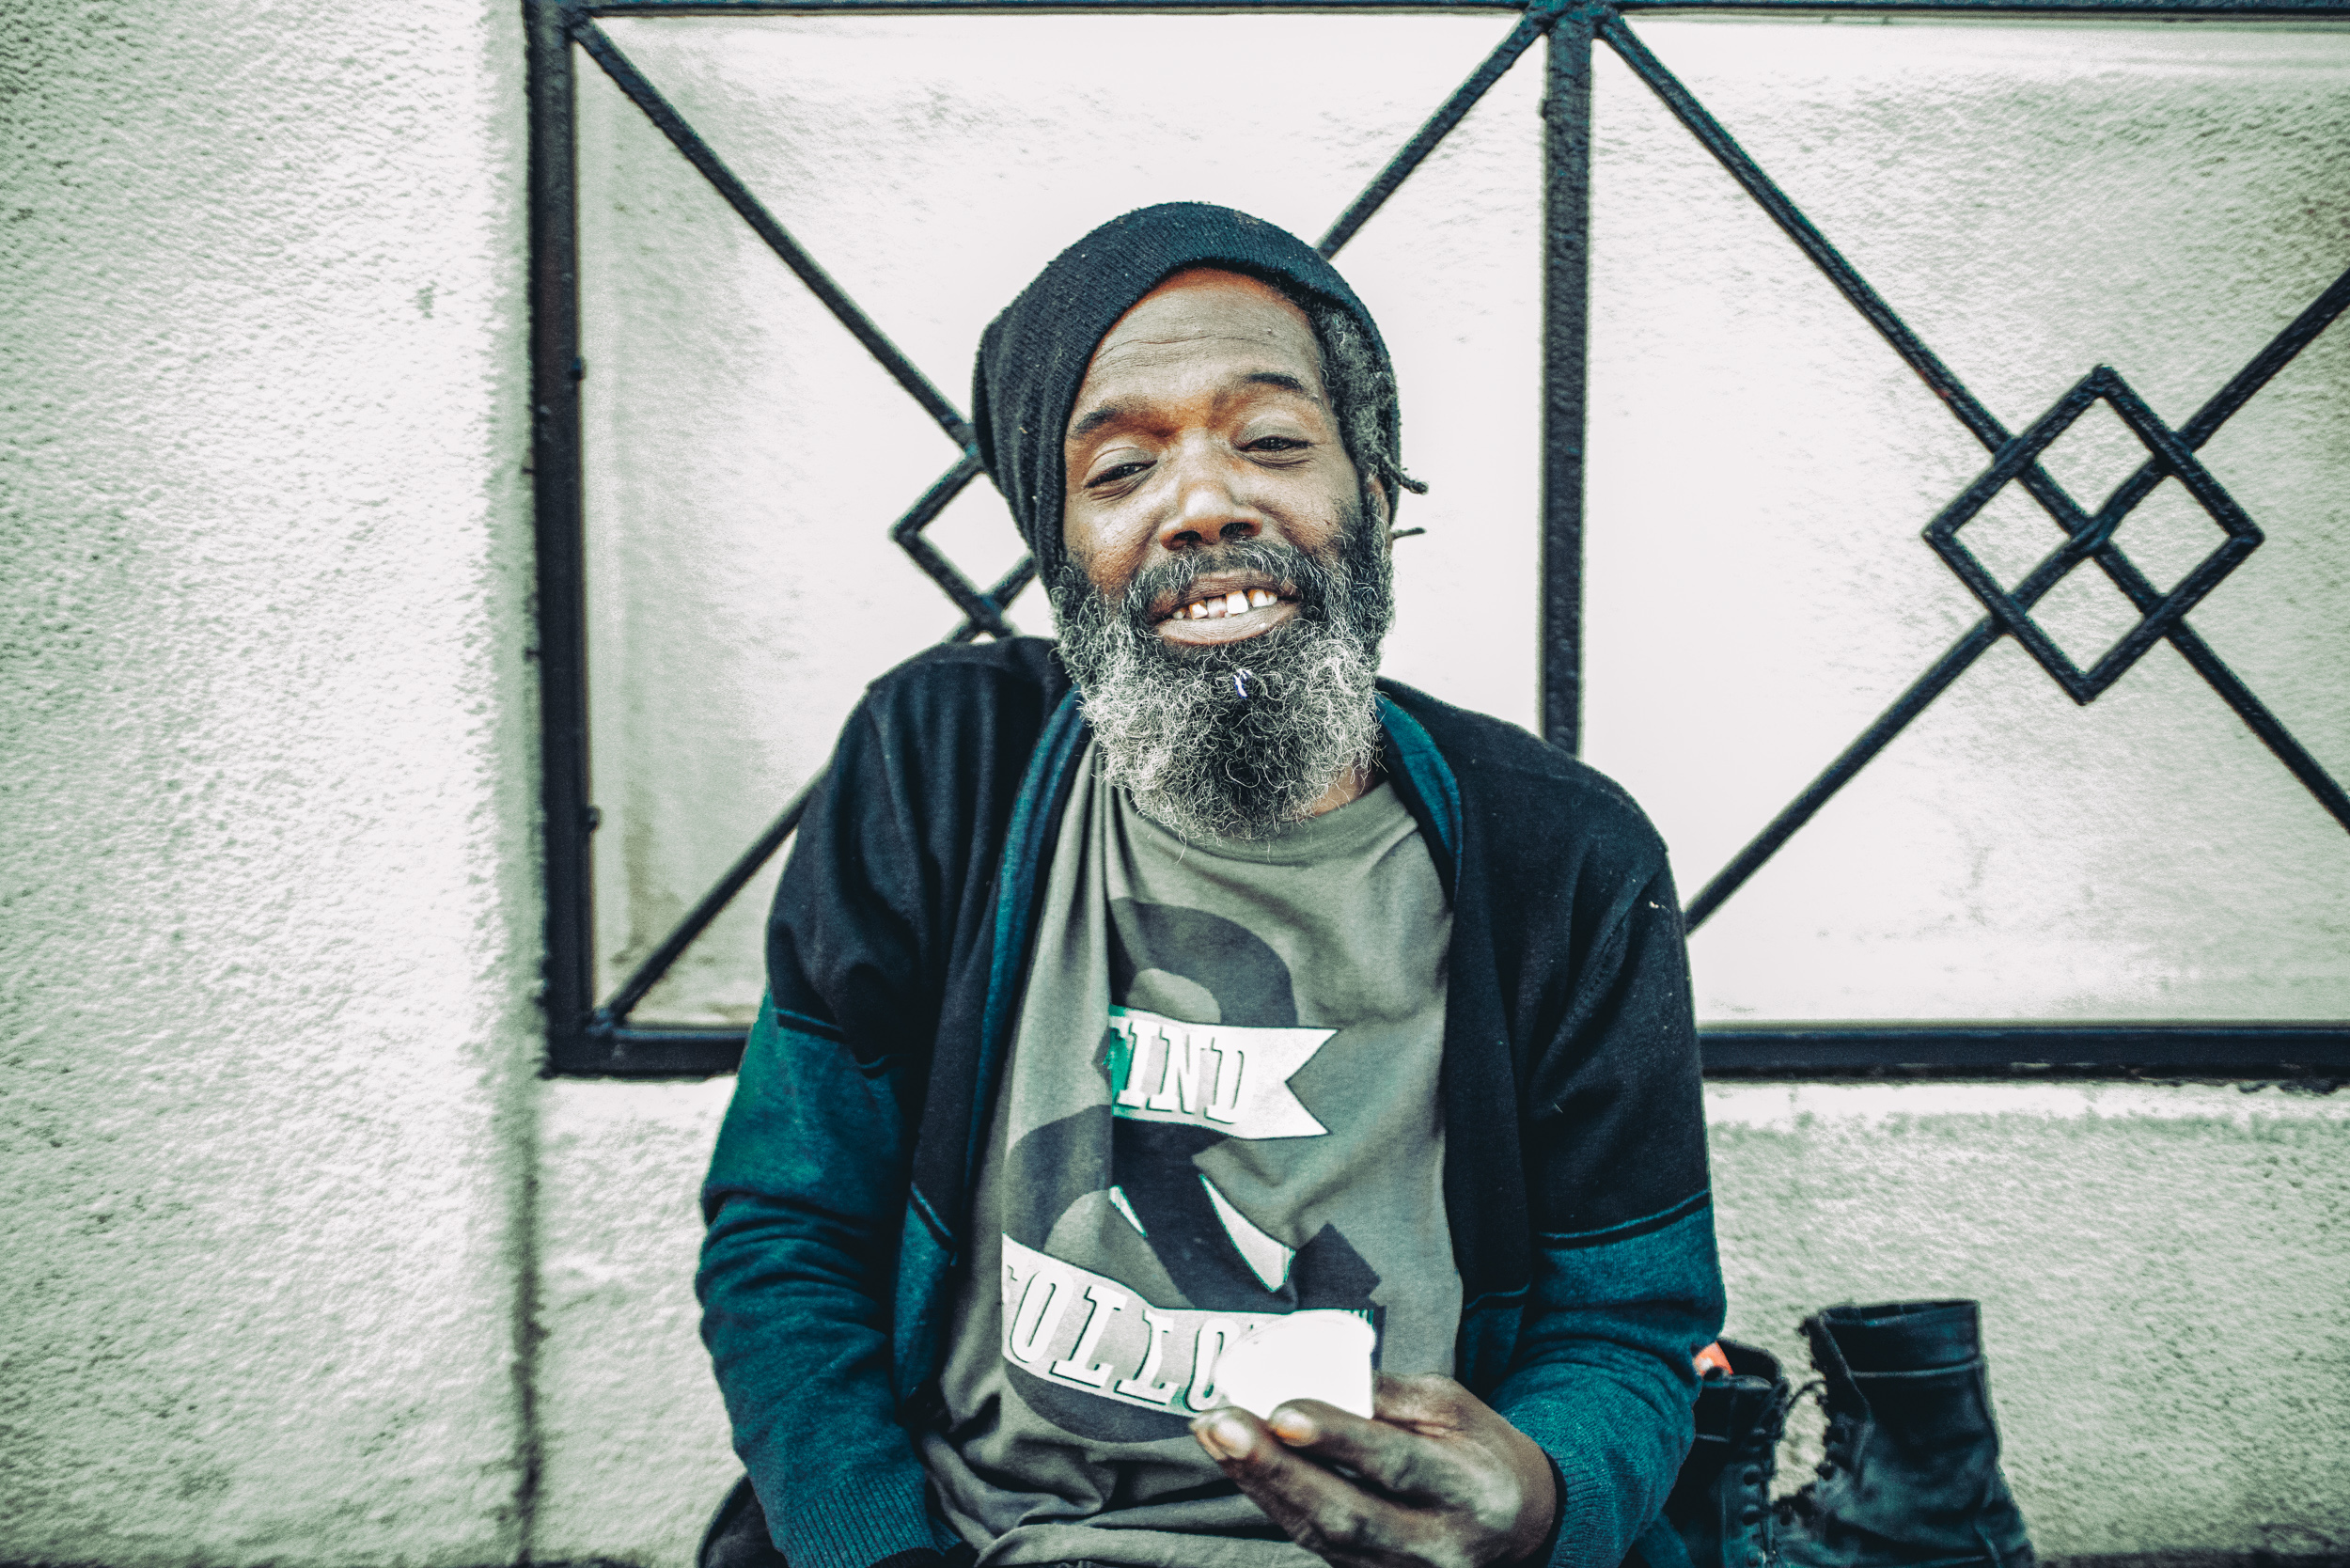 Former zoo keeper, now homeless. Life.